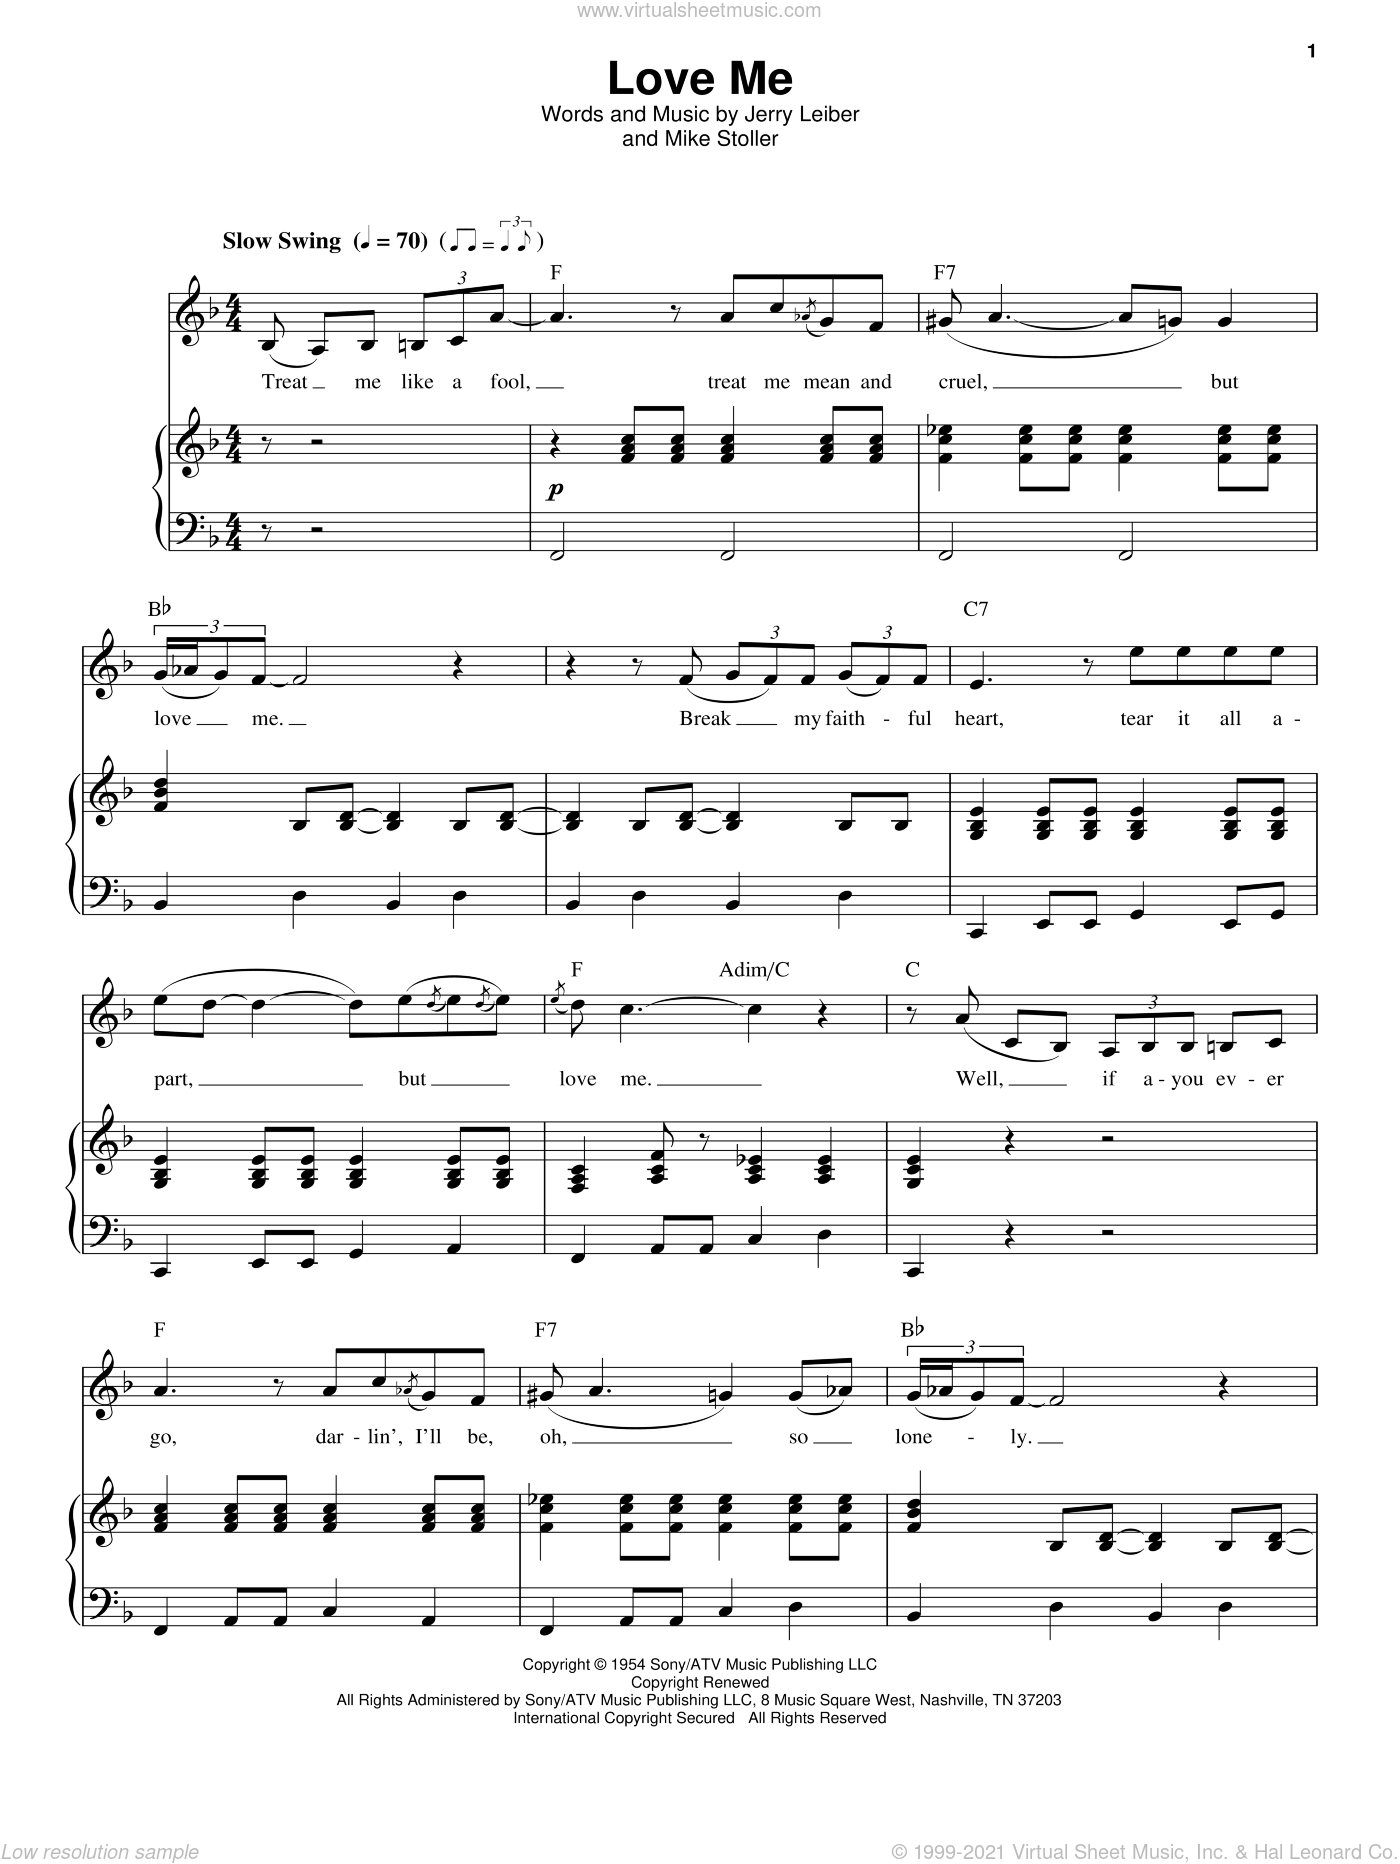 Love Me sheet music for voice and piano by Mike Stoller